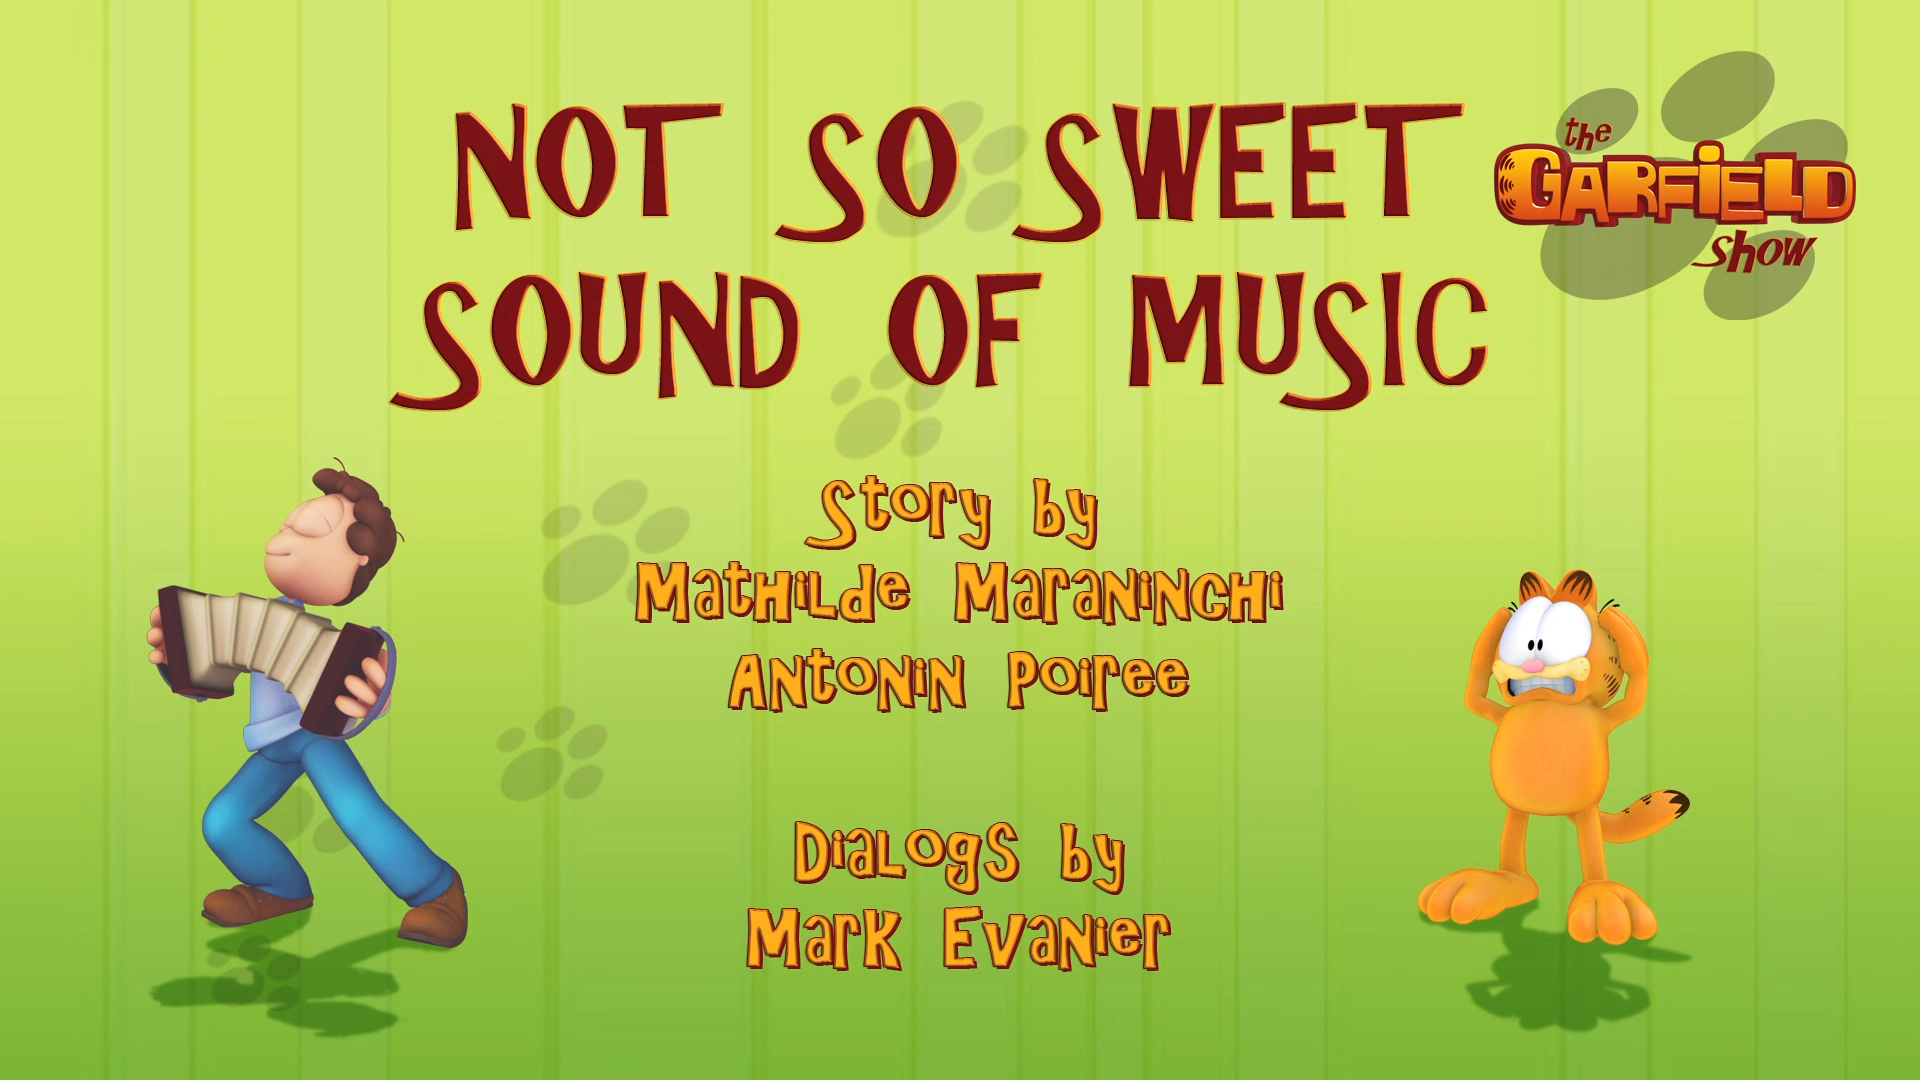 Not So Sweet Sound of Music | Garfield Wiki | FANDOM powered